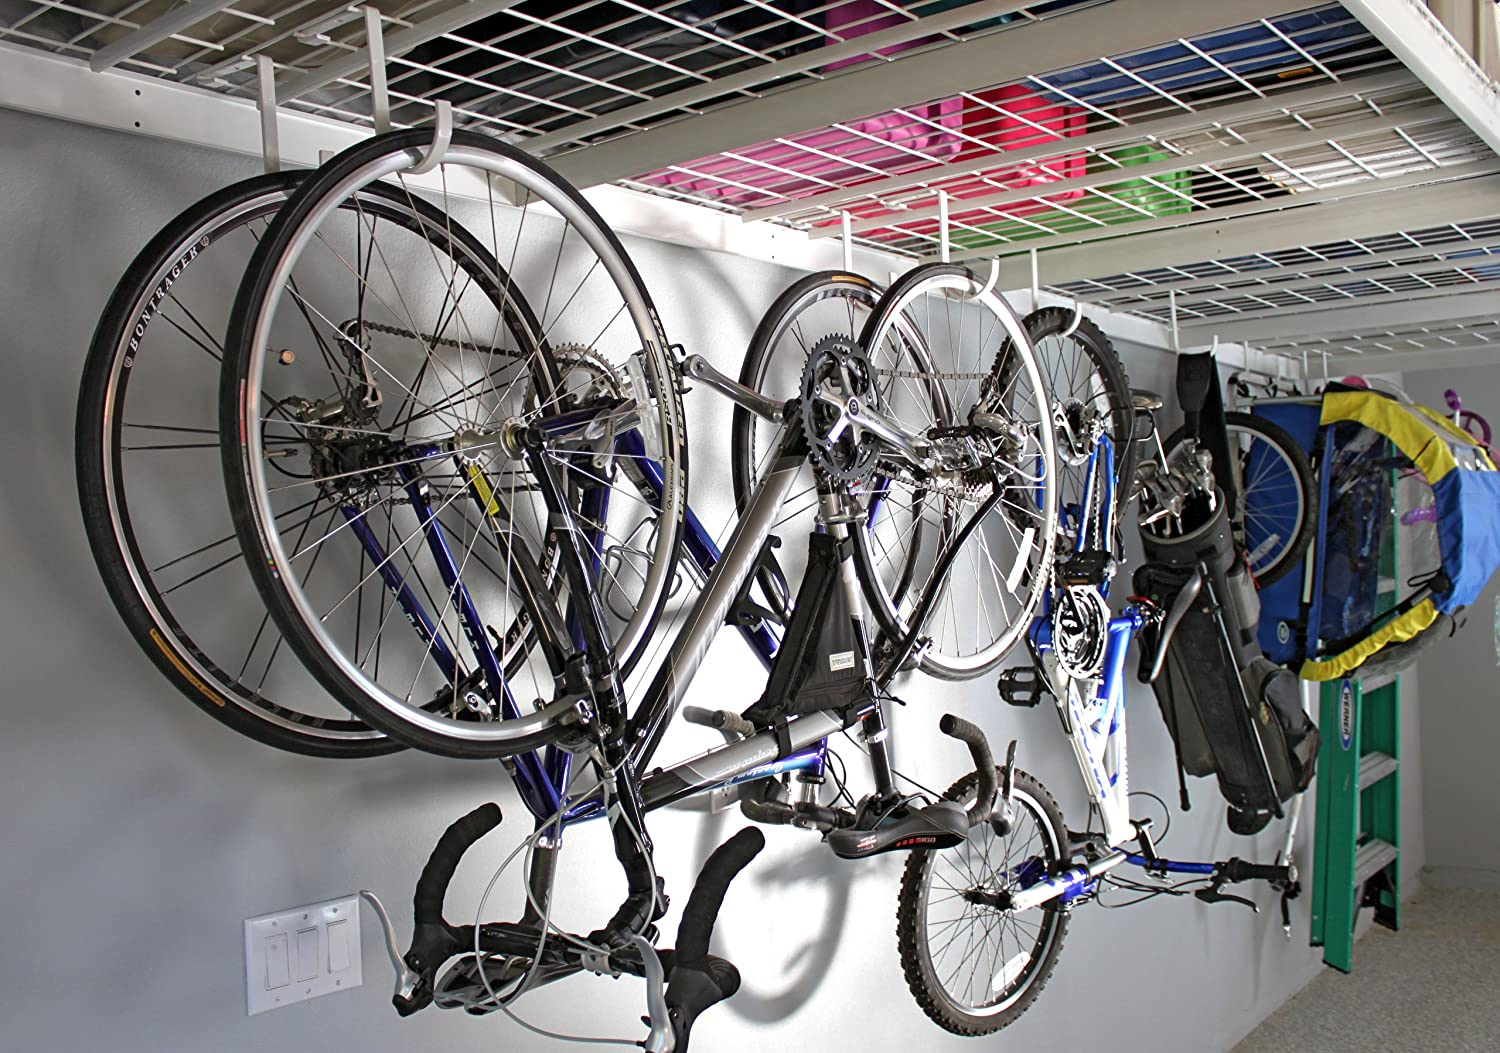 storage id many rack apartment or bikes bike simple small home hang the in a for garage